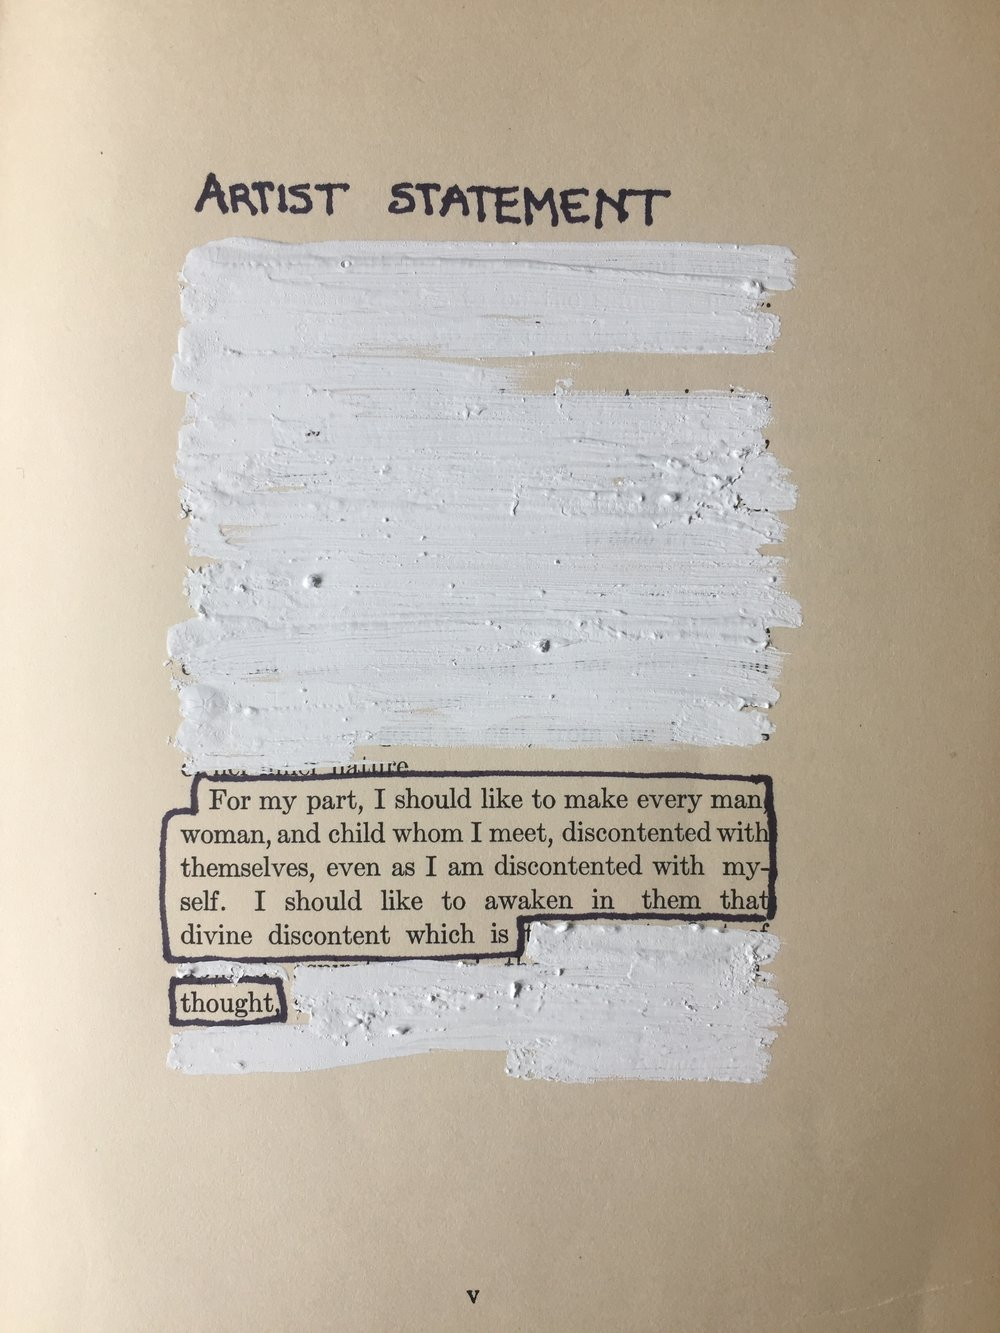 ARTIST STATEMENT / CATHERINE BRESNER